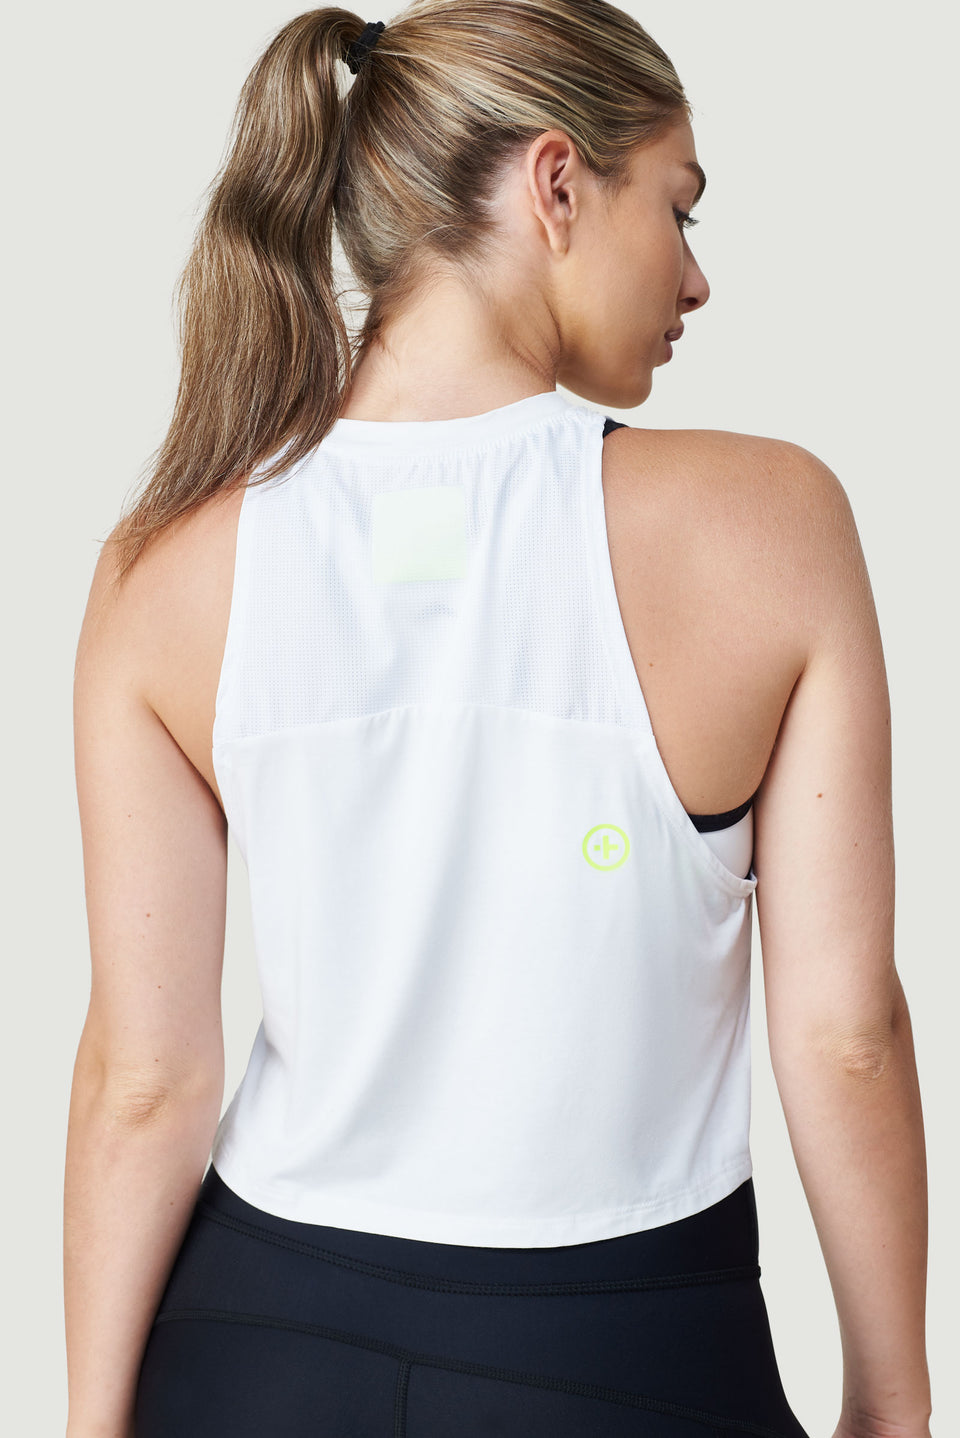 Captiva Women's Loose Fitted Tank